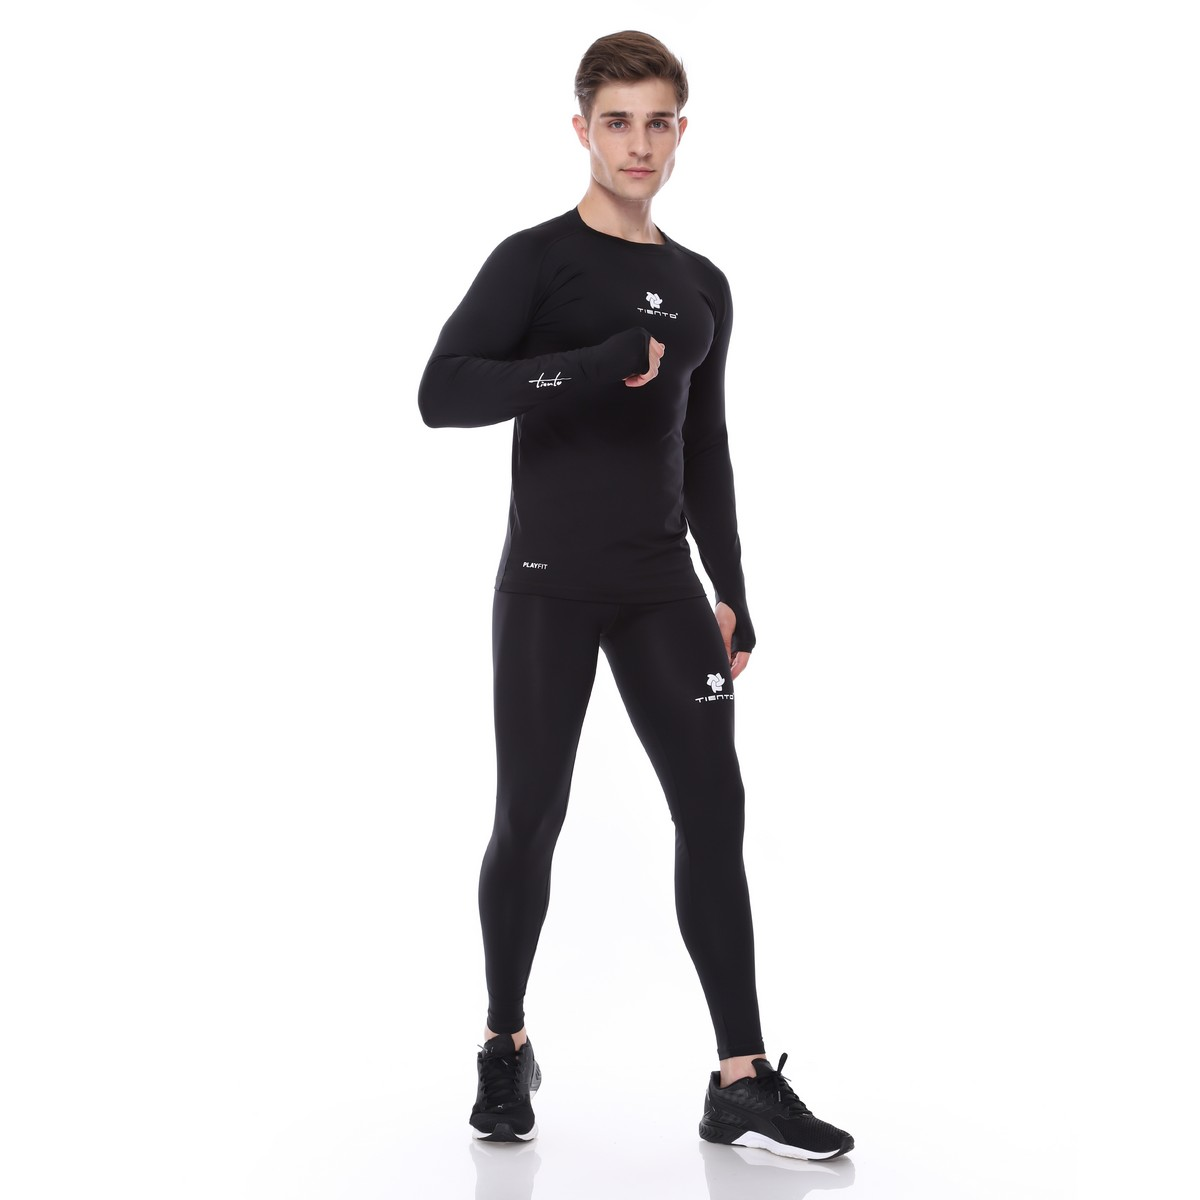 Baselayer Long Sleeve Thumbhole Dan Celana Legging Sport Long Pants Black White Men 1 Stel Tiento